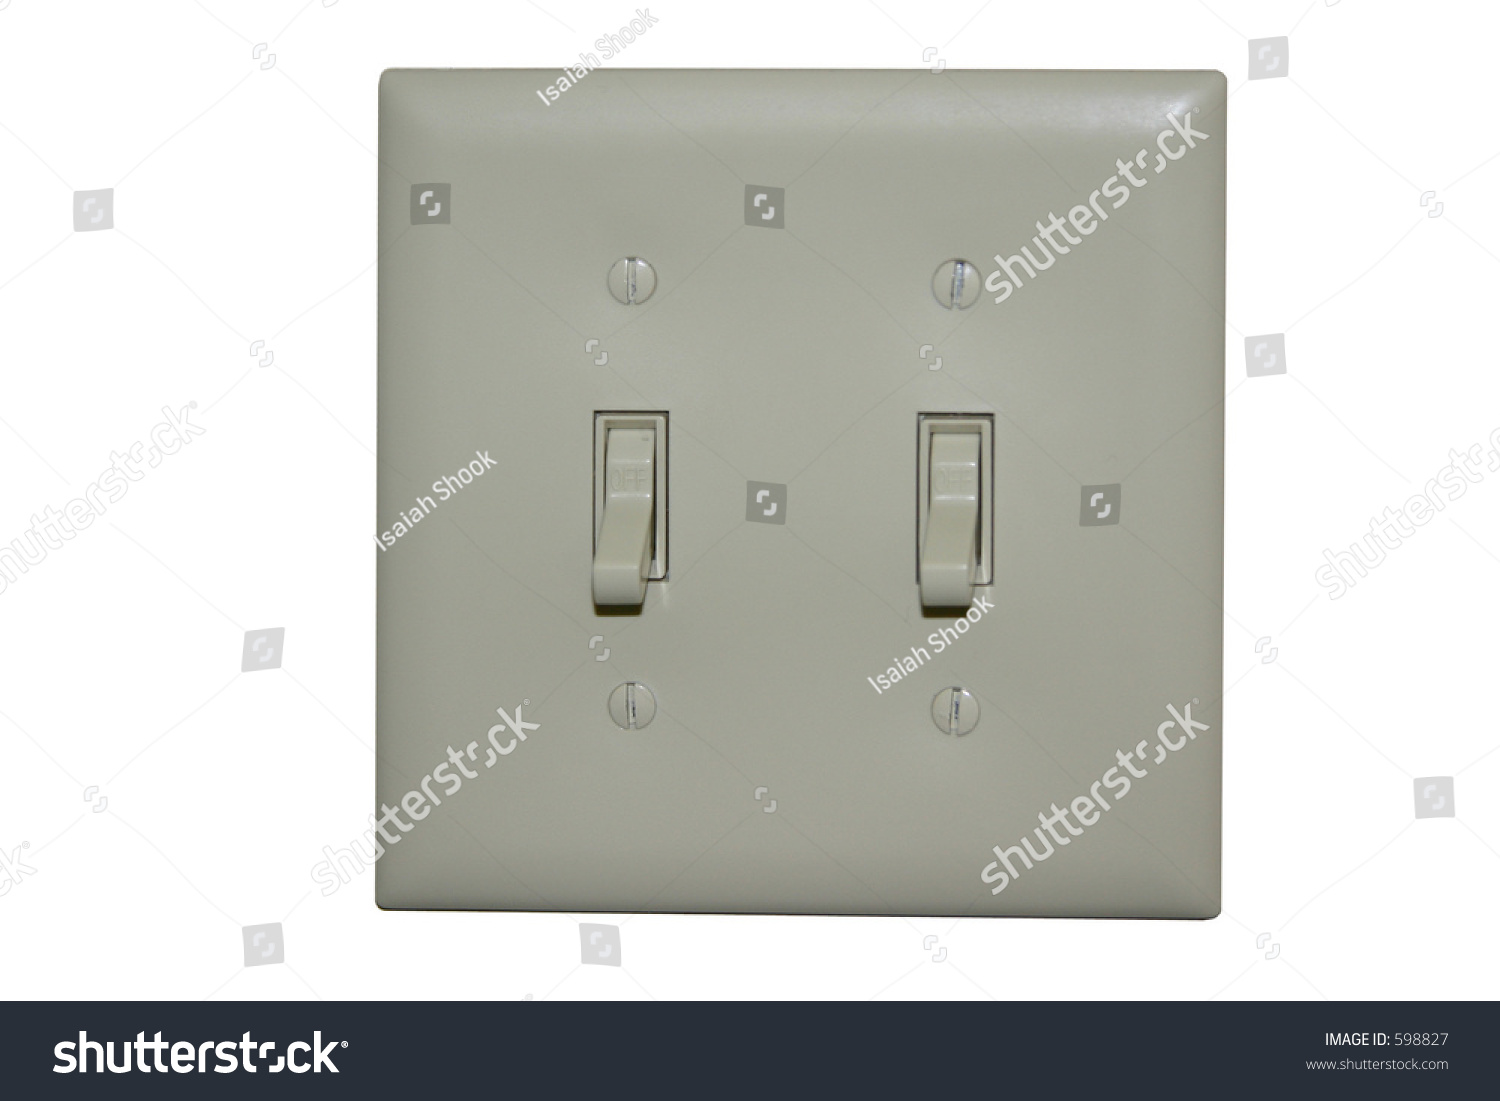 close up shot of two light switches both in the on position | EZ Canvas